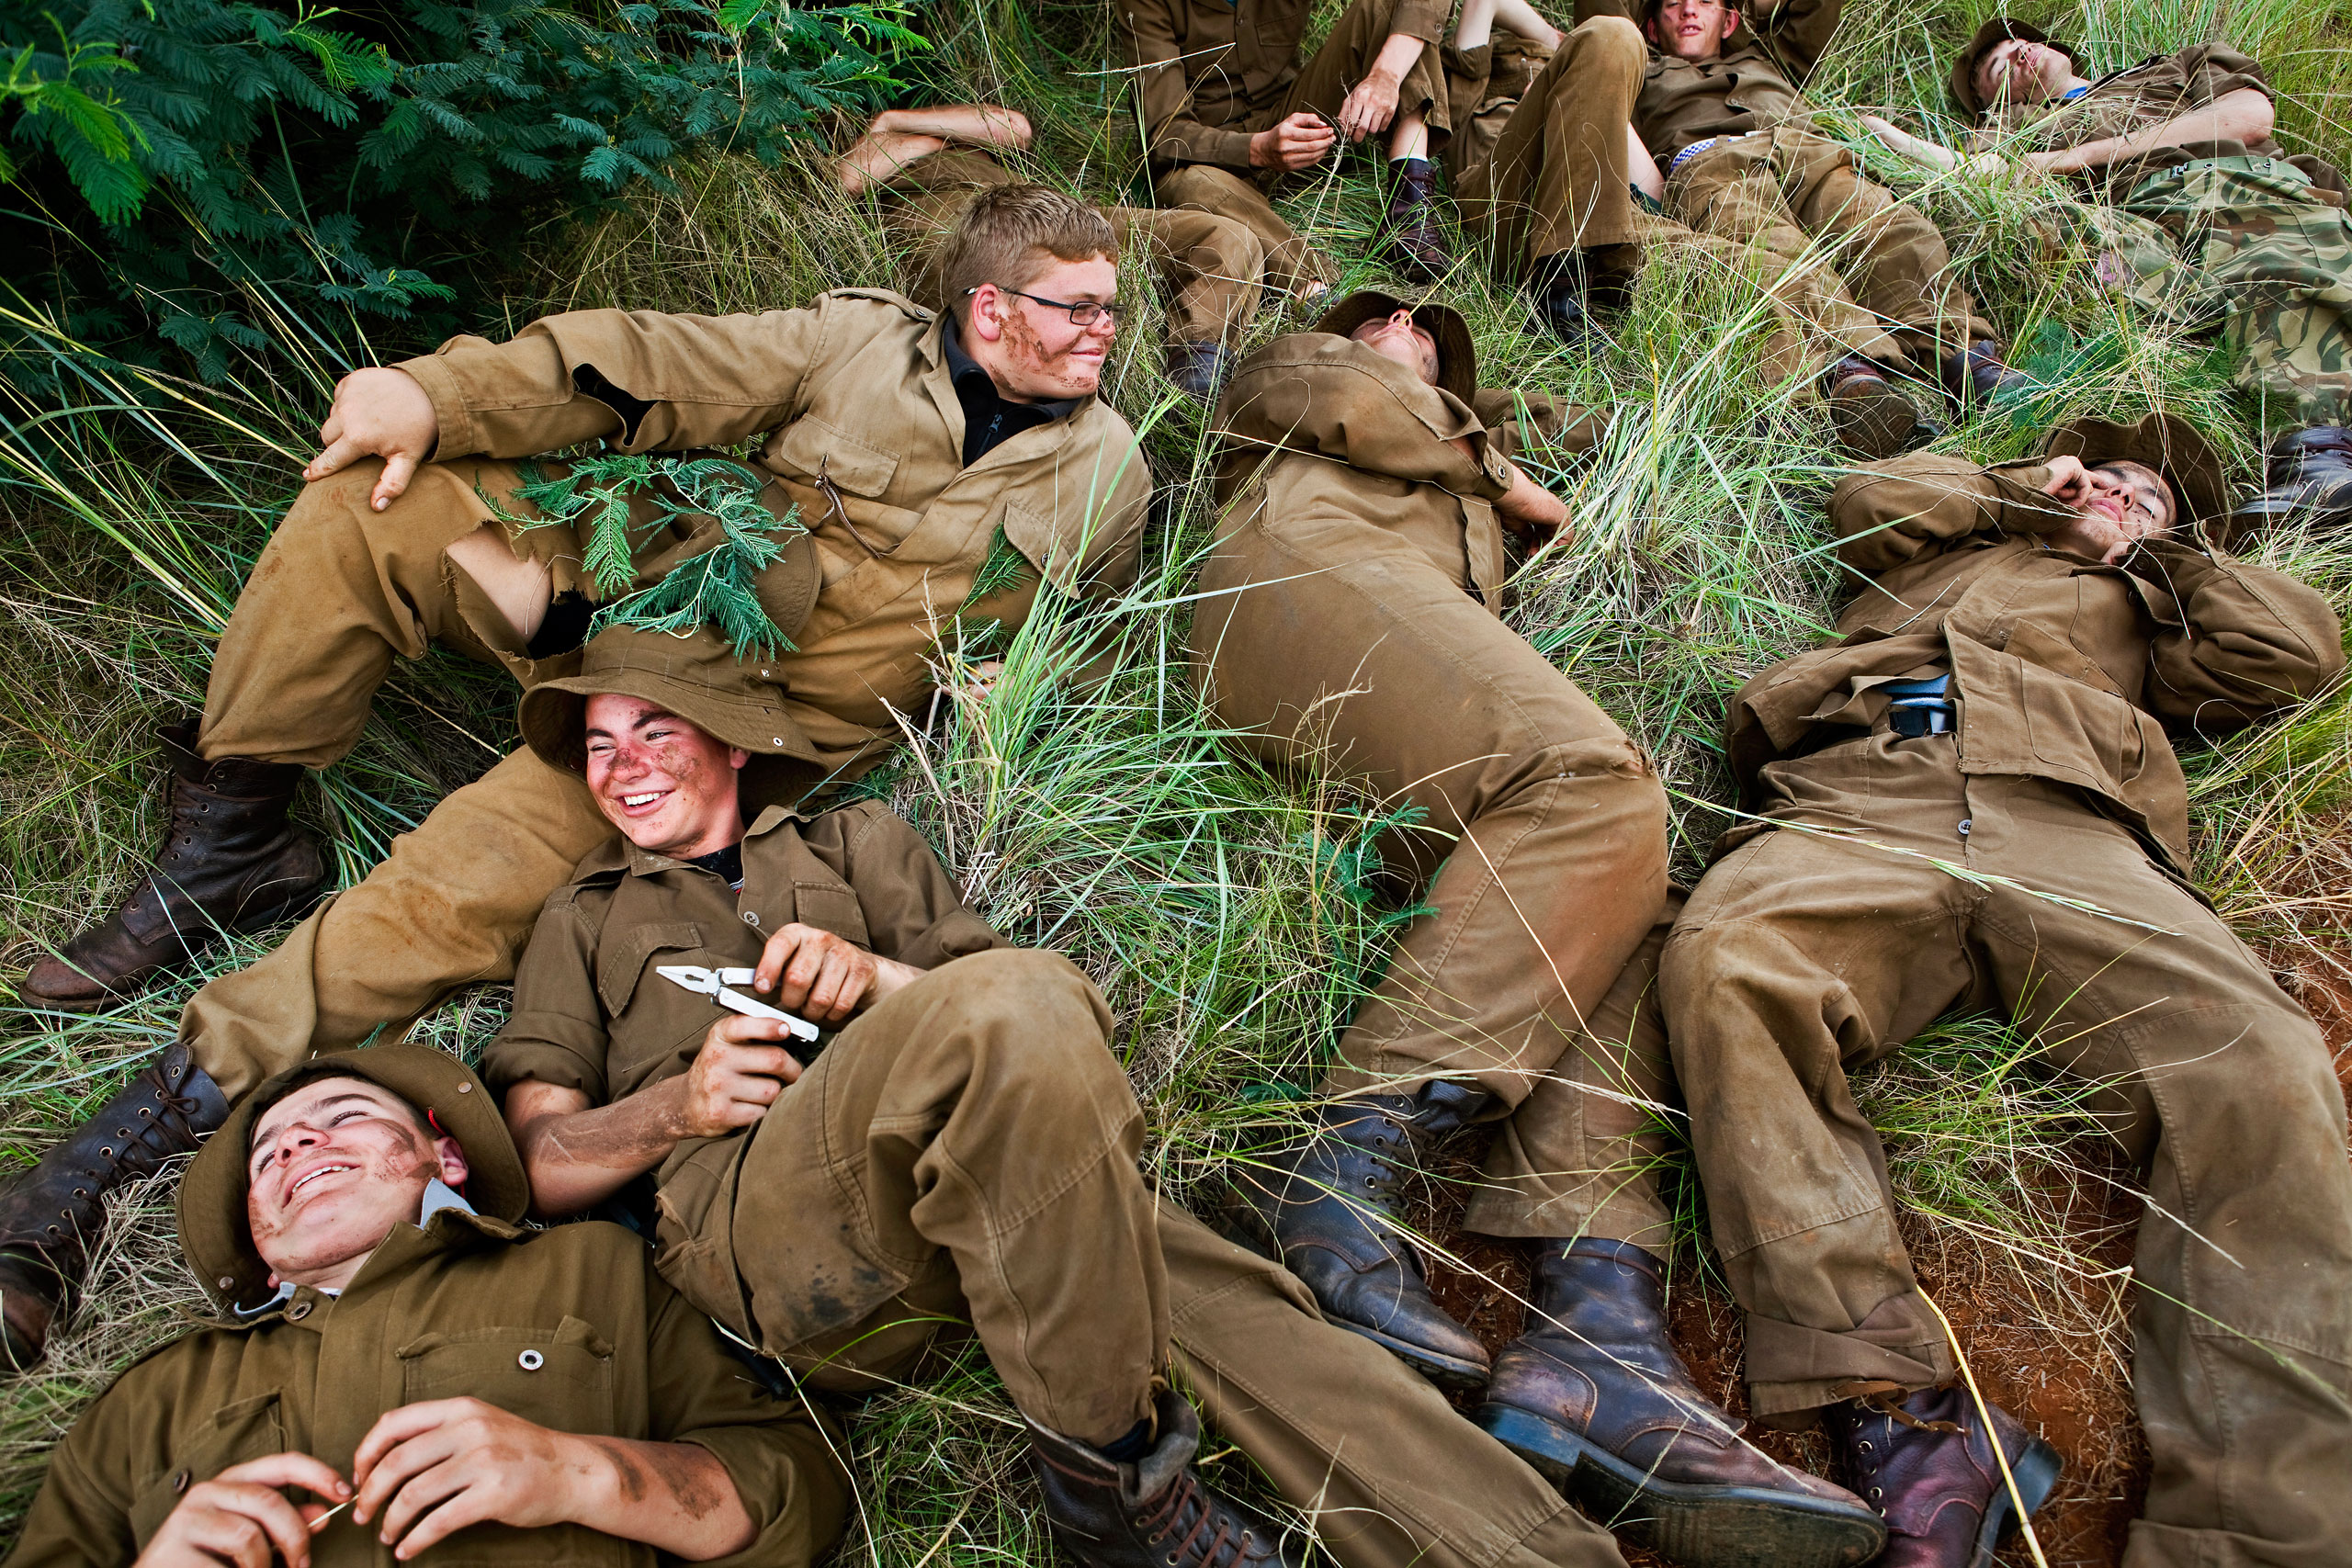 The boys rest on the grass, during one of the very few breaks during the tough training of the Kommandokorps camp.